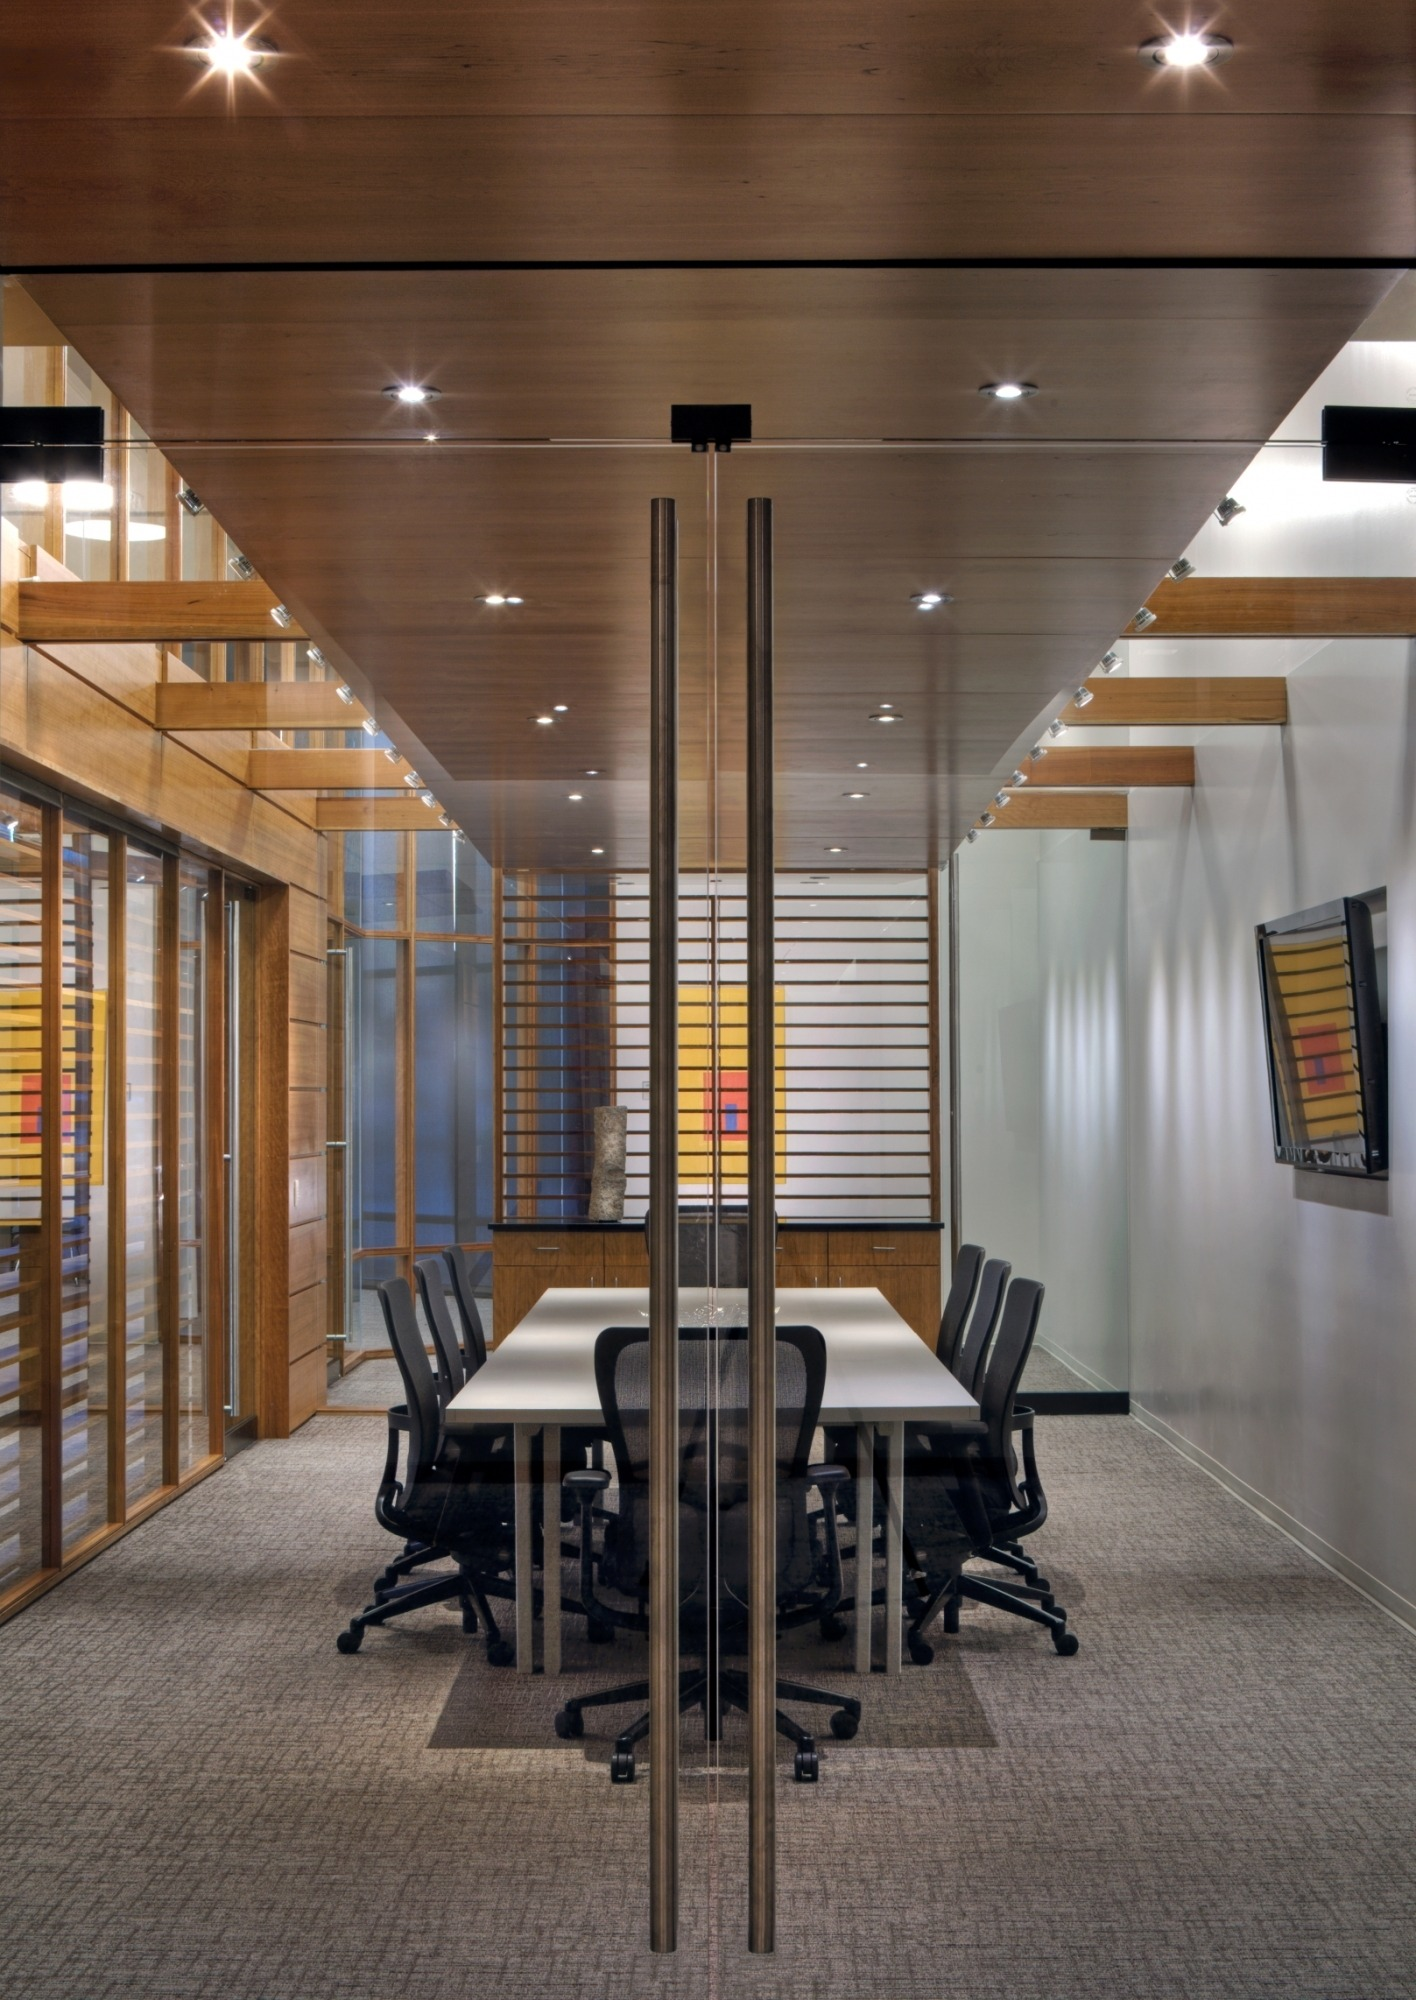 Image of the Lied Commons Boardroom taken through the glass doors showing the long table and a TV on the wall.